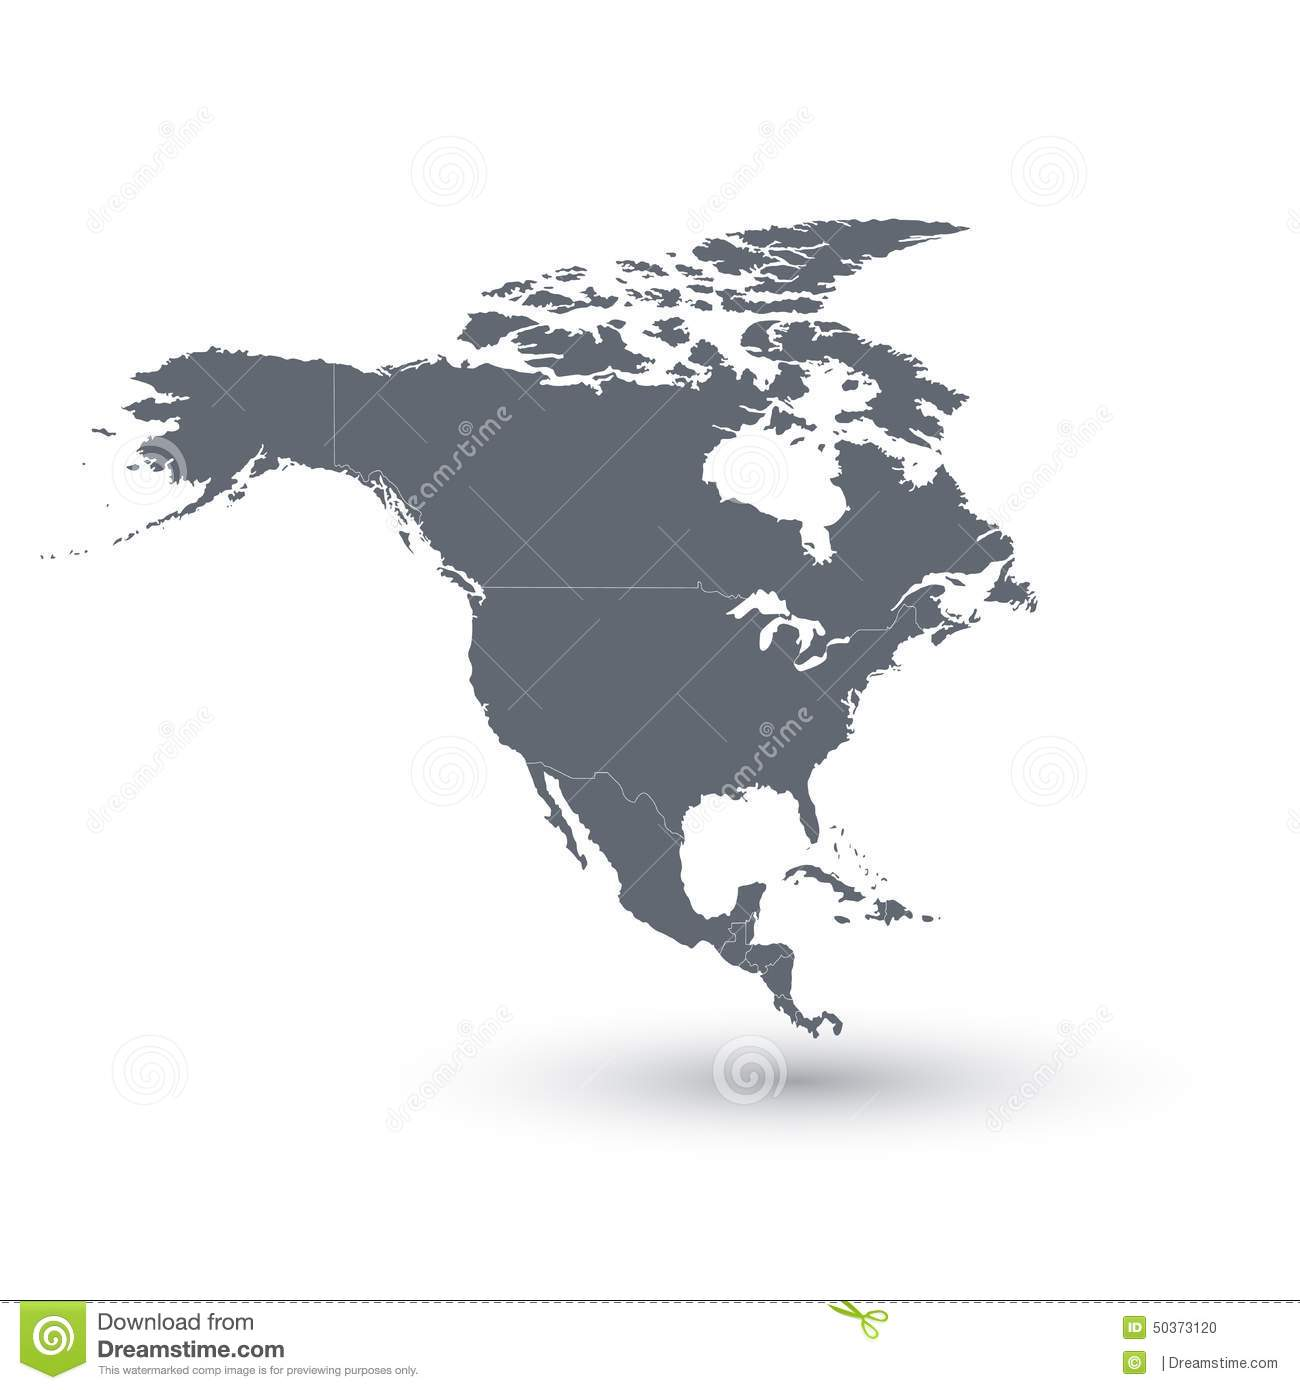 map of canada and alaska usa with Stock Illustration North America Map Vector Illustration Modern Design Image50373120 on Porcupine Mountains State Park Lake Gogebic likewise Porcupine Mountains State Park Lake Gogebic moreover North Slope dell 27Alaska further Alaska likewise AB0097.